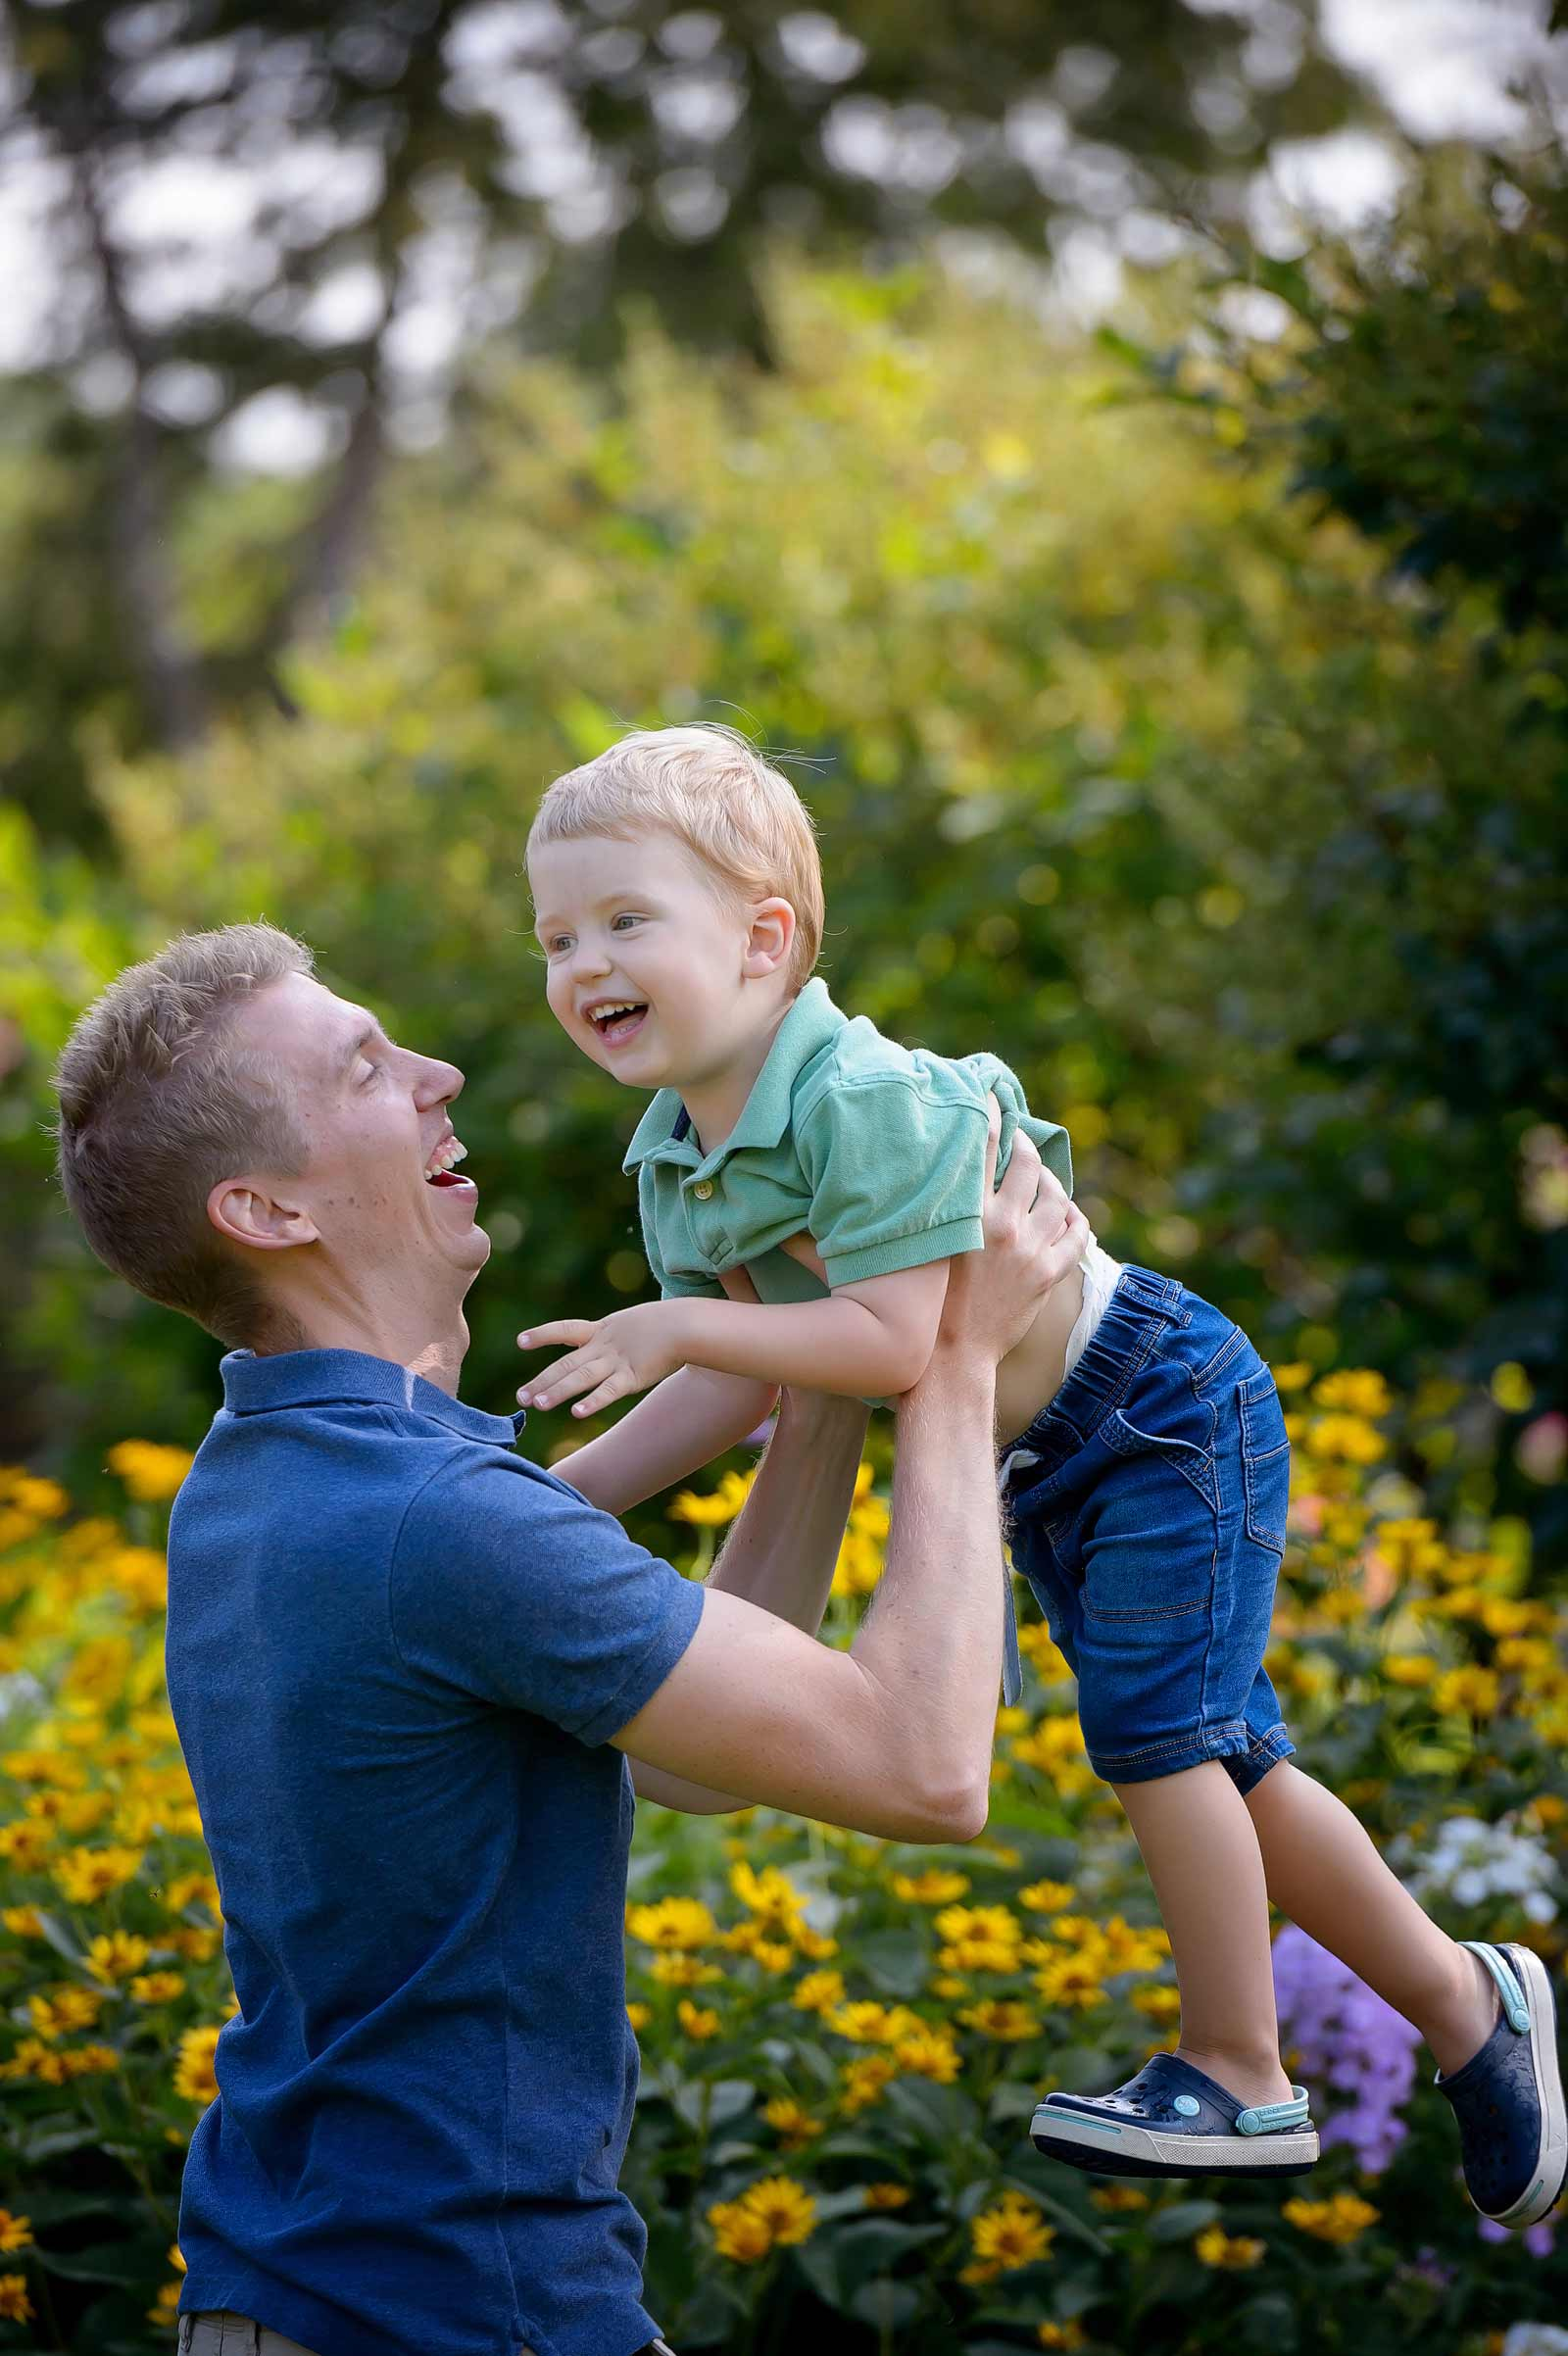 Playing with dad and laughing in the summer at Maplelawn Gardens